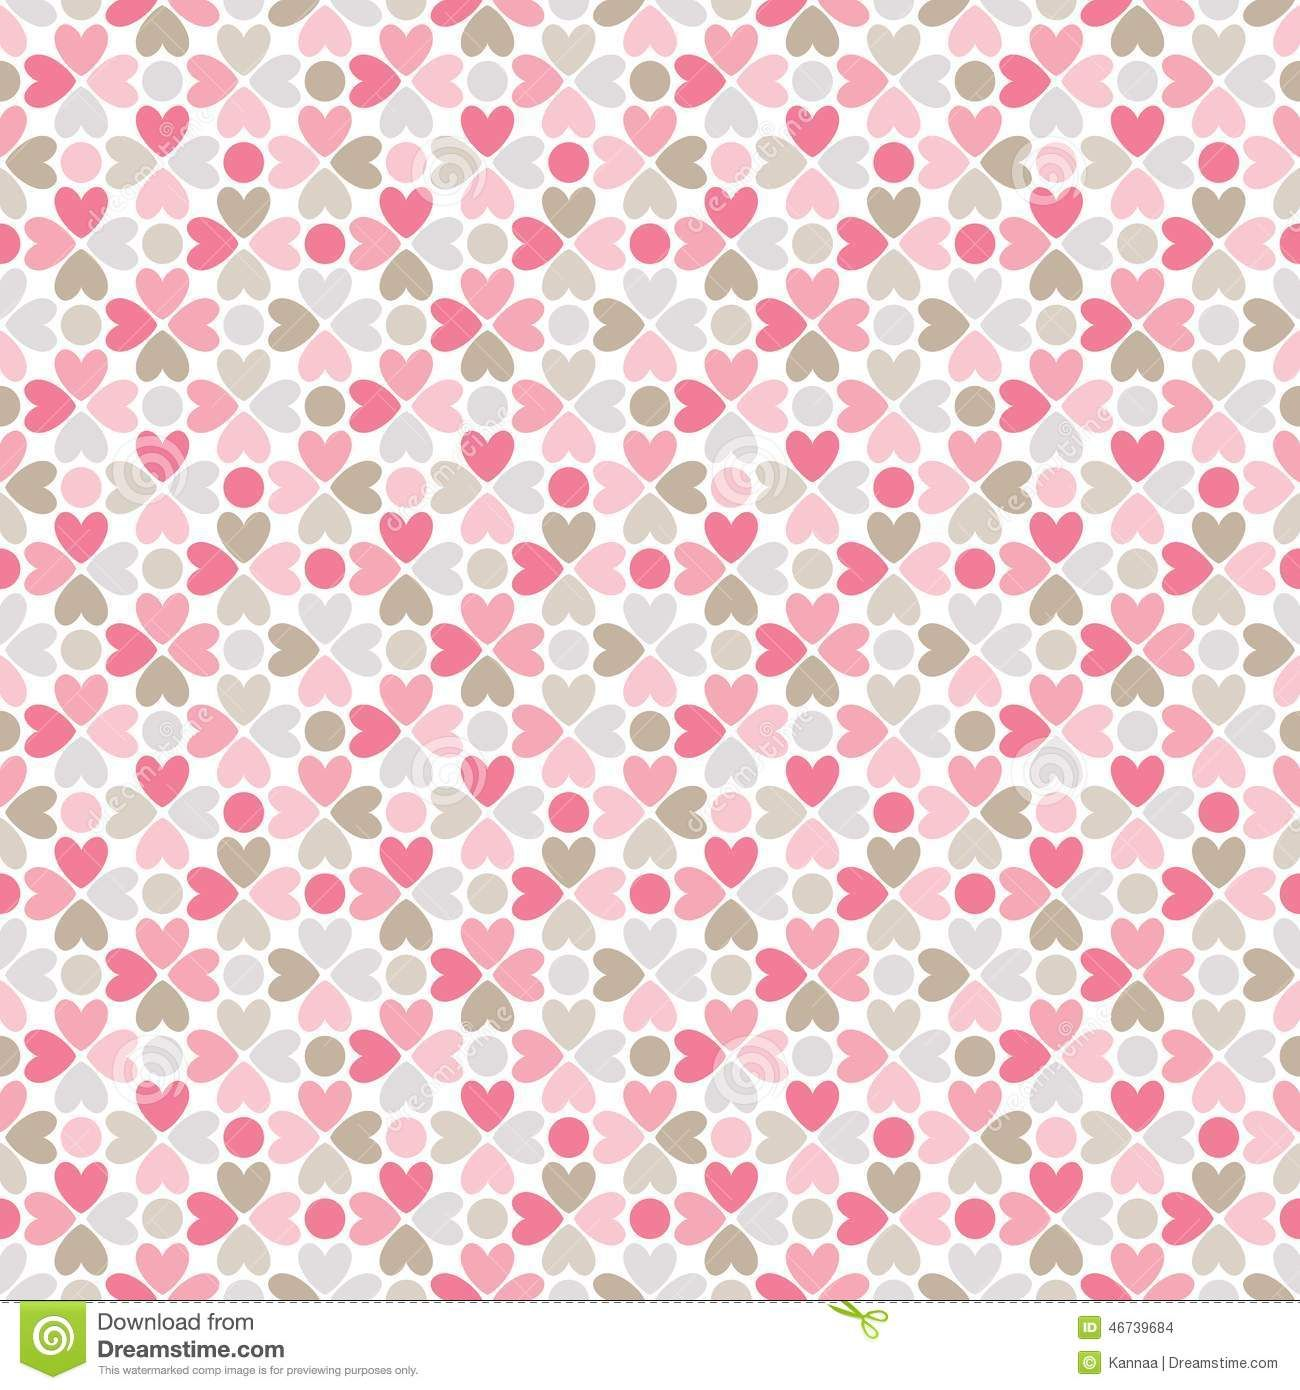 Papel scrap para imprimir rosa buscar con google for Papel decorativo para paredes baratos